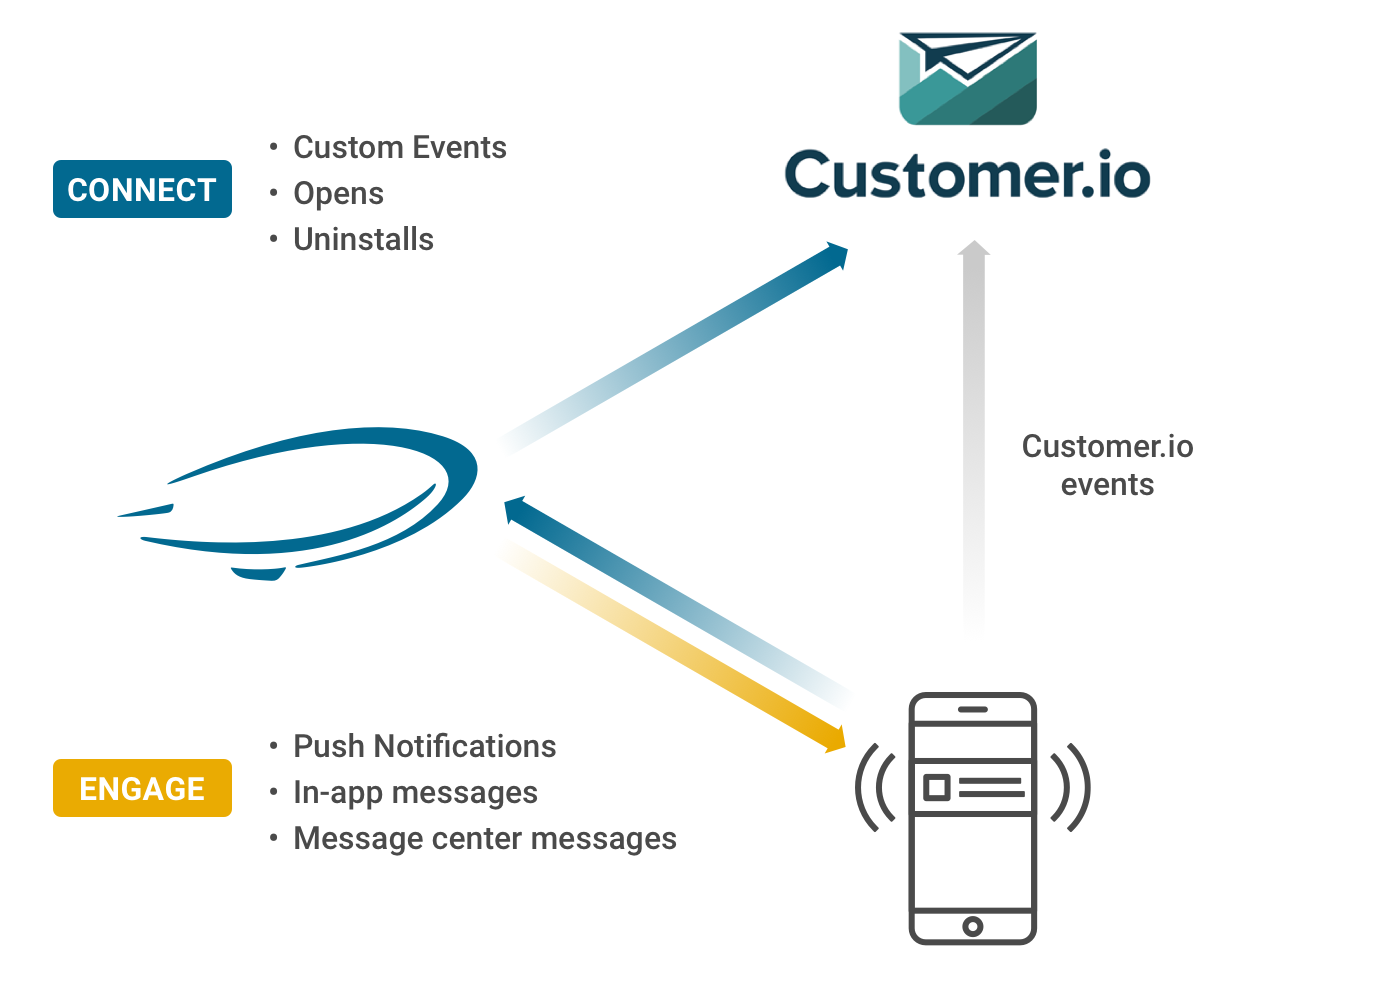 Urban Airship to Customer.io event data flow